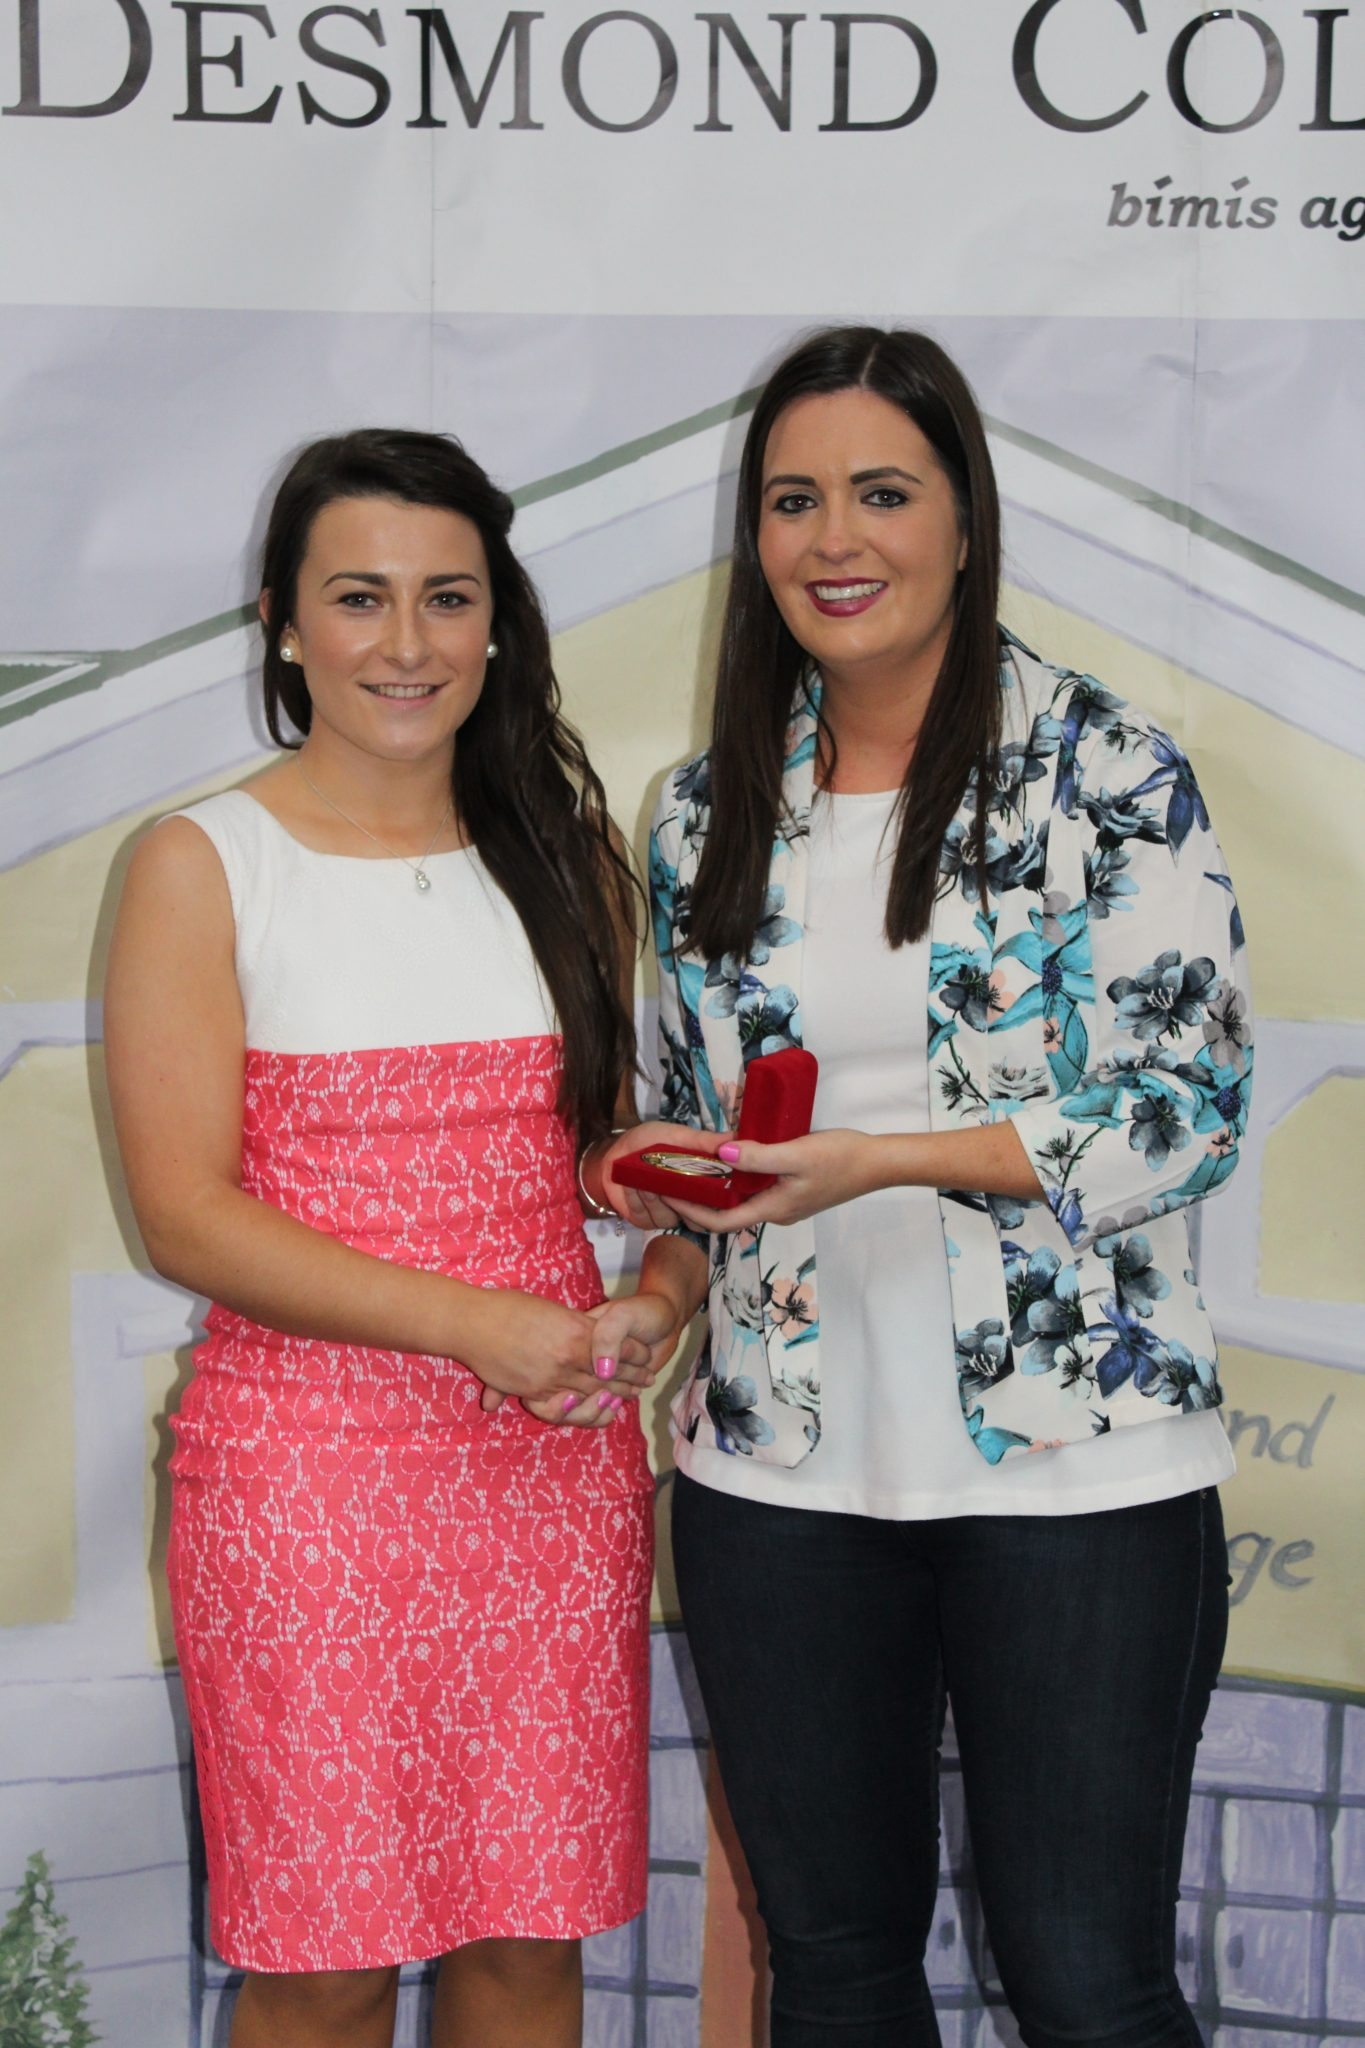 Desmond College Leaving Certificate Graduation 2015: sports awards: Leanne Browne with Ms Culhane